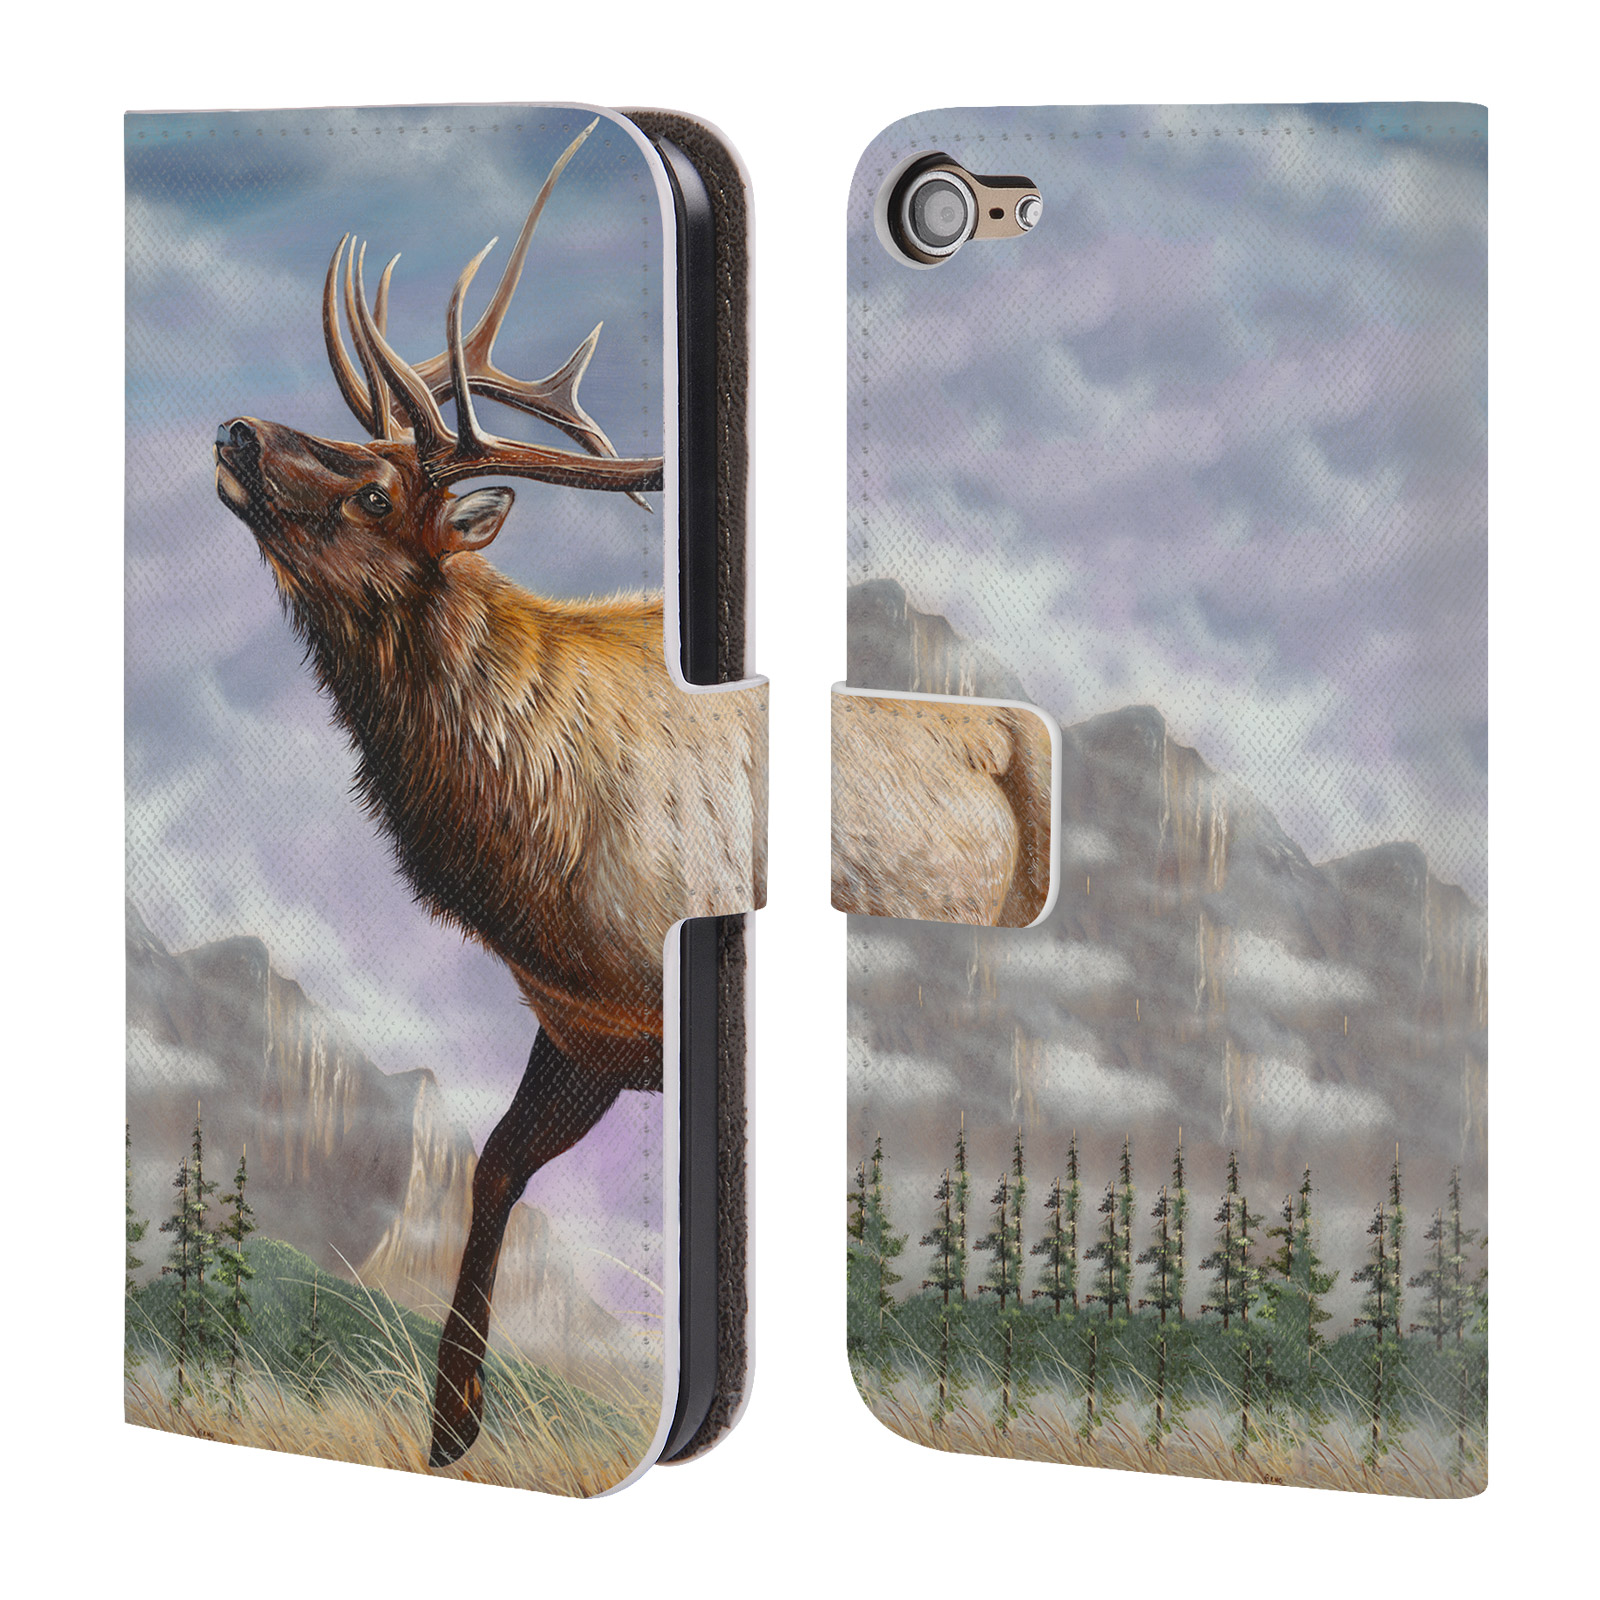 OFFICIAL-GENO-PEOPLES-ART-LIFE-LEATHER-BOOK-WALLET-CASE-FOR-APPLE-iPOD-TOUCH-MP3